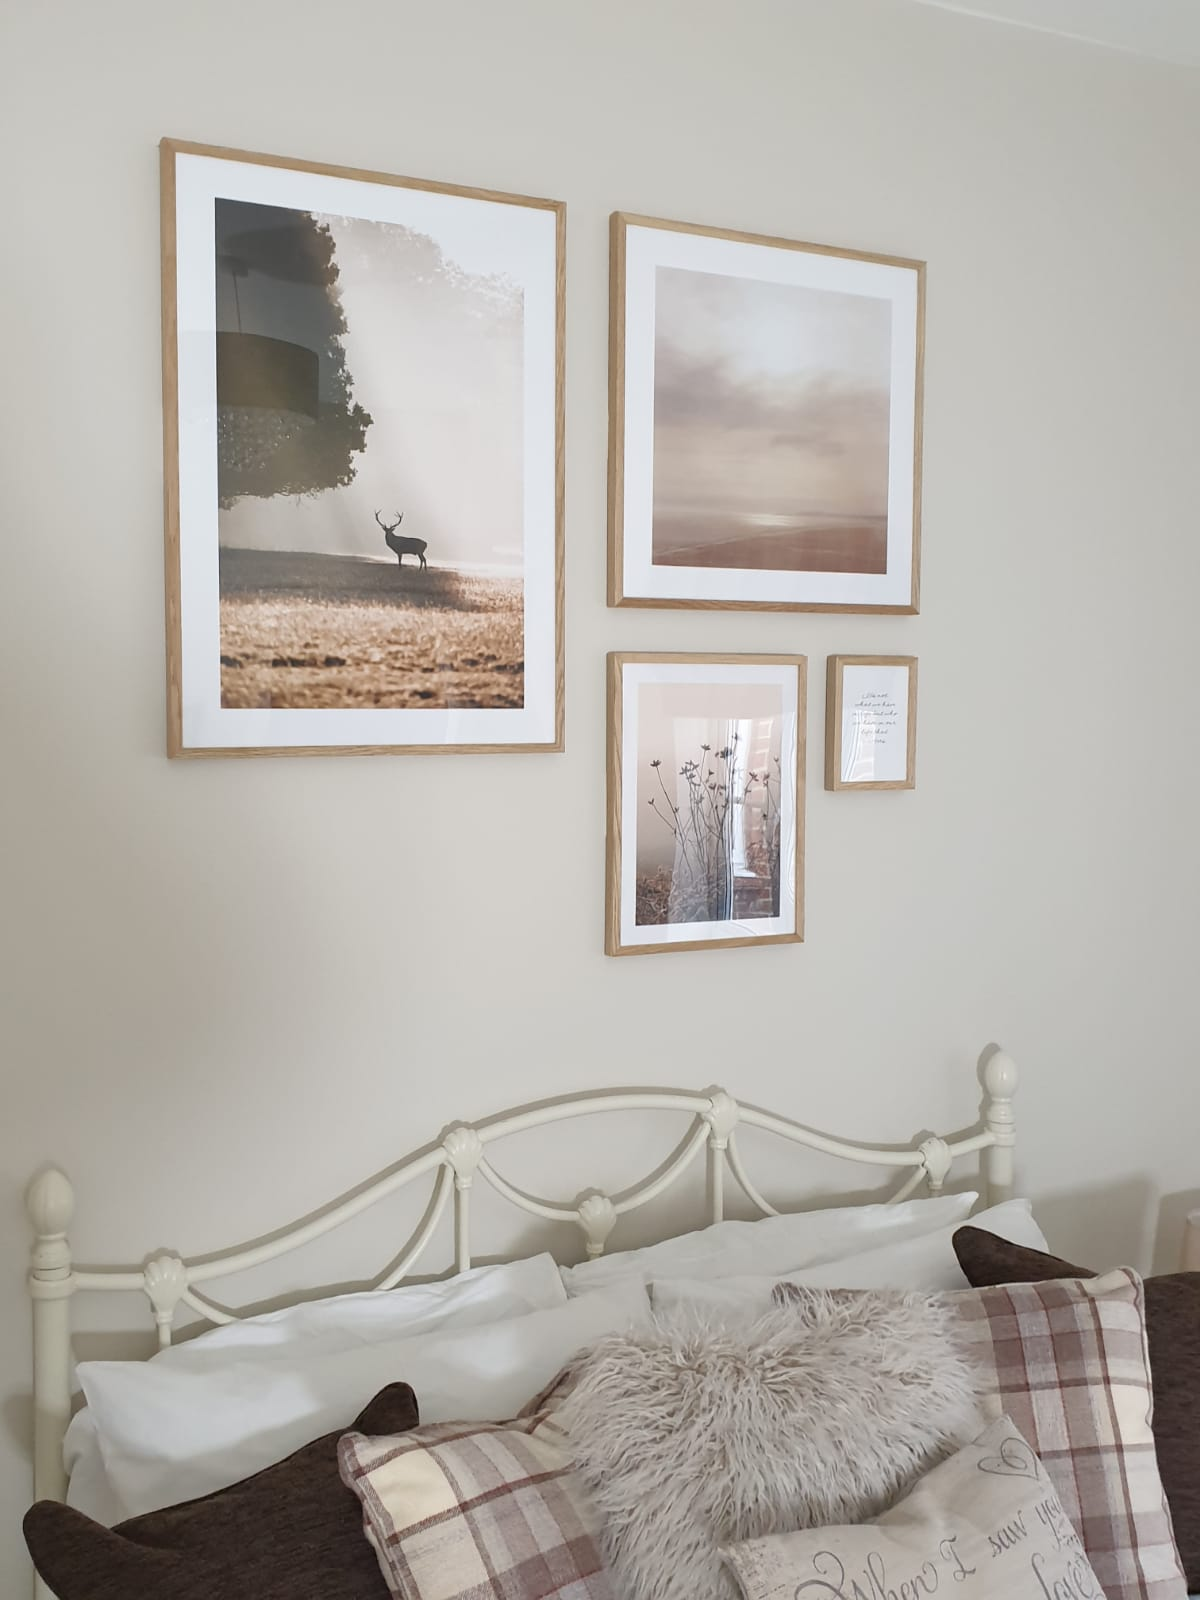 the 4 pictures on the wall above the bed